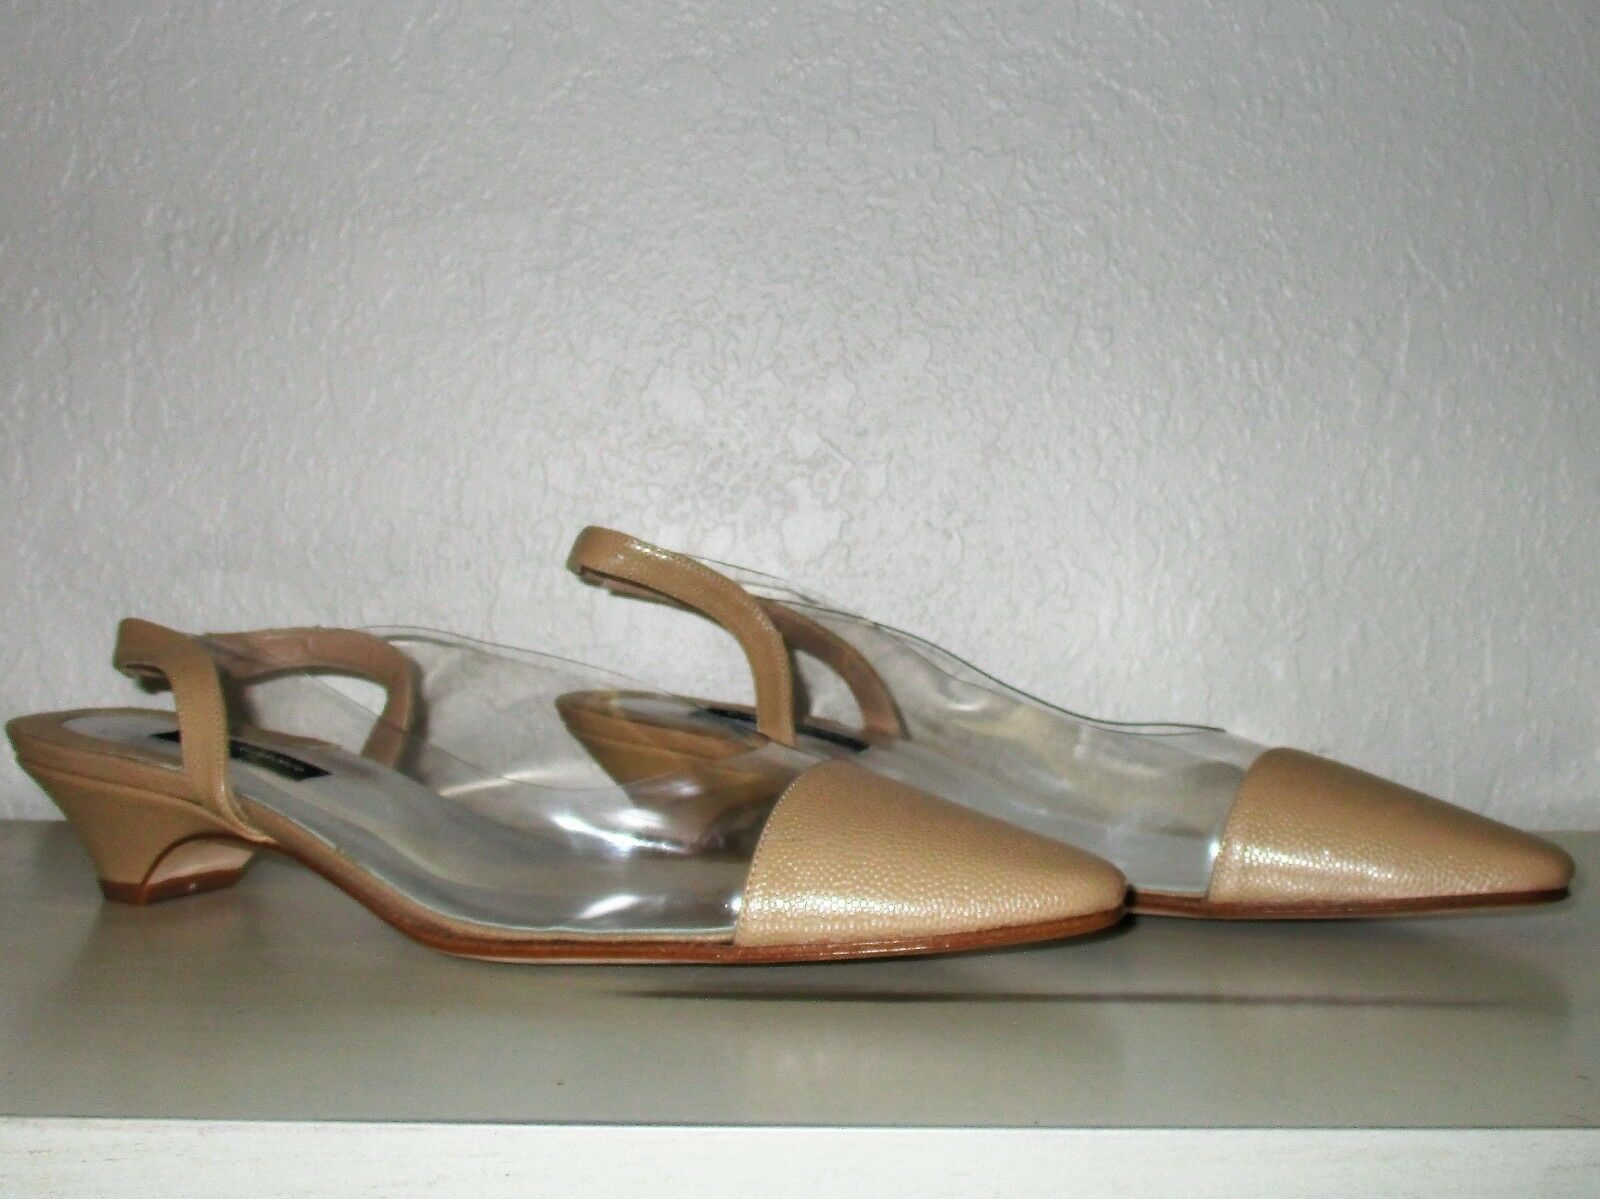 Susan van der Linde Lucite Heel-Größe 39.5-France-Beautiful